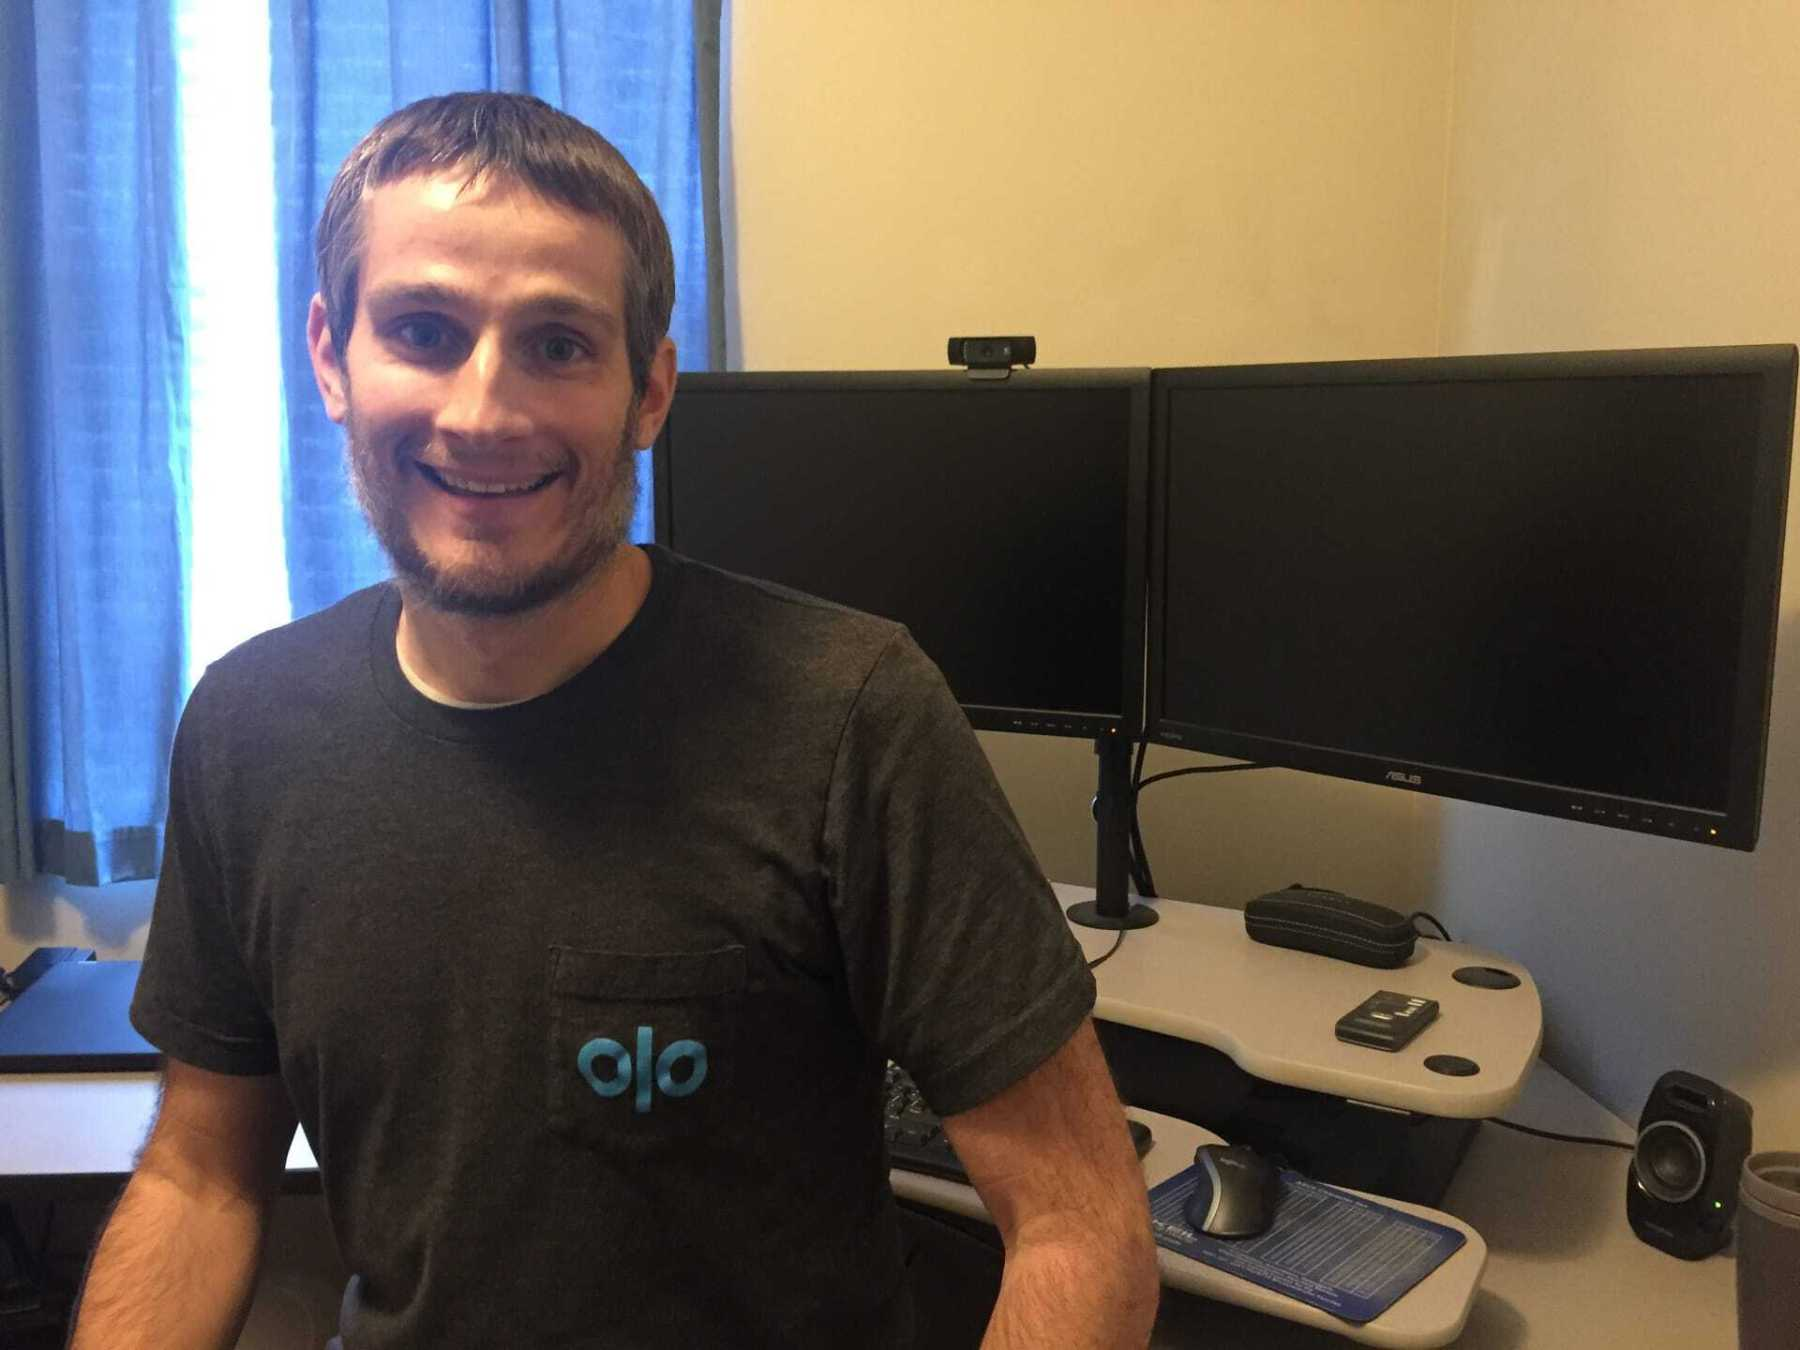 Keith started a new job with Olo - based in NYC